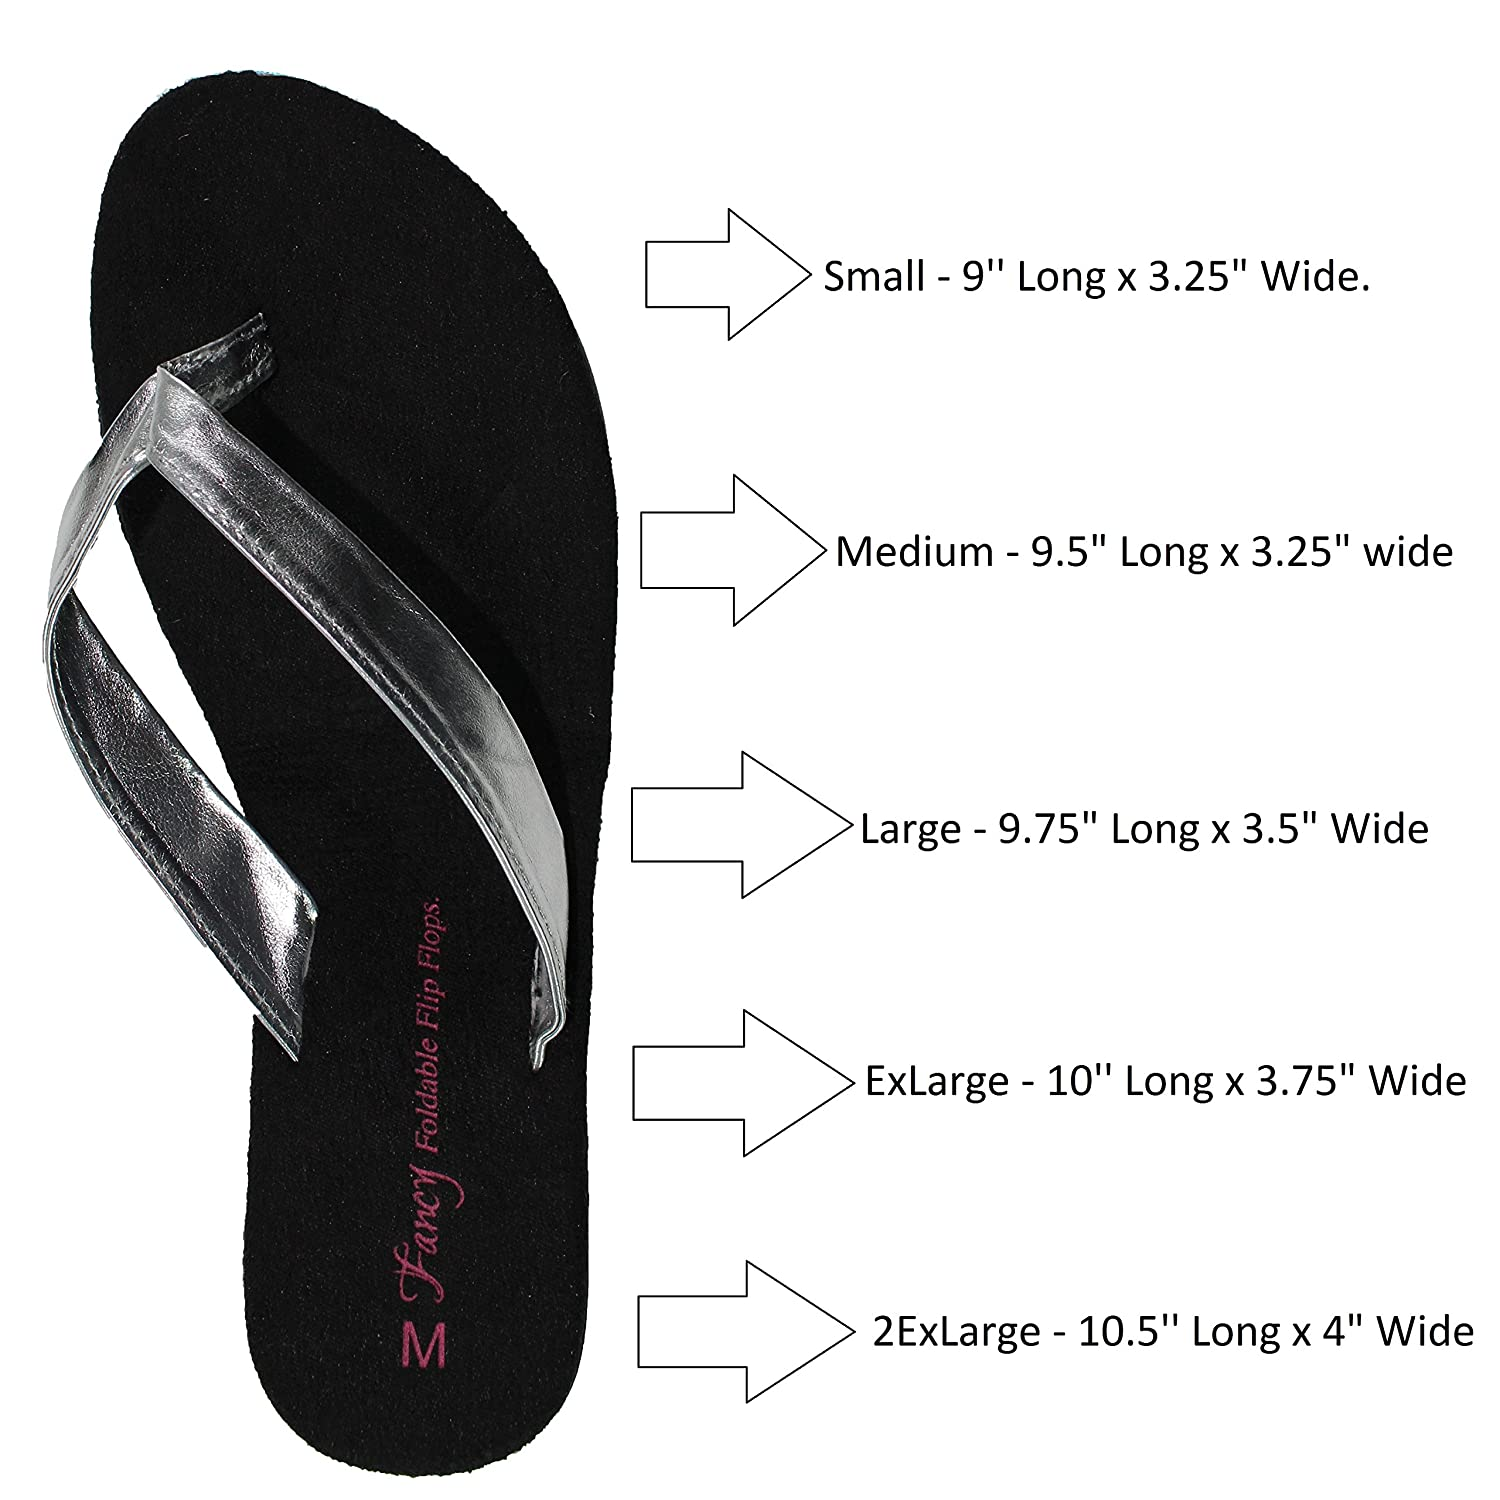 7fdae0f7c95d Flip Flops Sandal Foldable WITH EXPANDABLE TOTE Bag for putting High Heels  in. Womens silver folding fancy shoes PORTABLE Travel SHOE fold up Thongs  Comfort ...